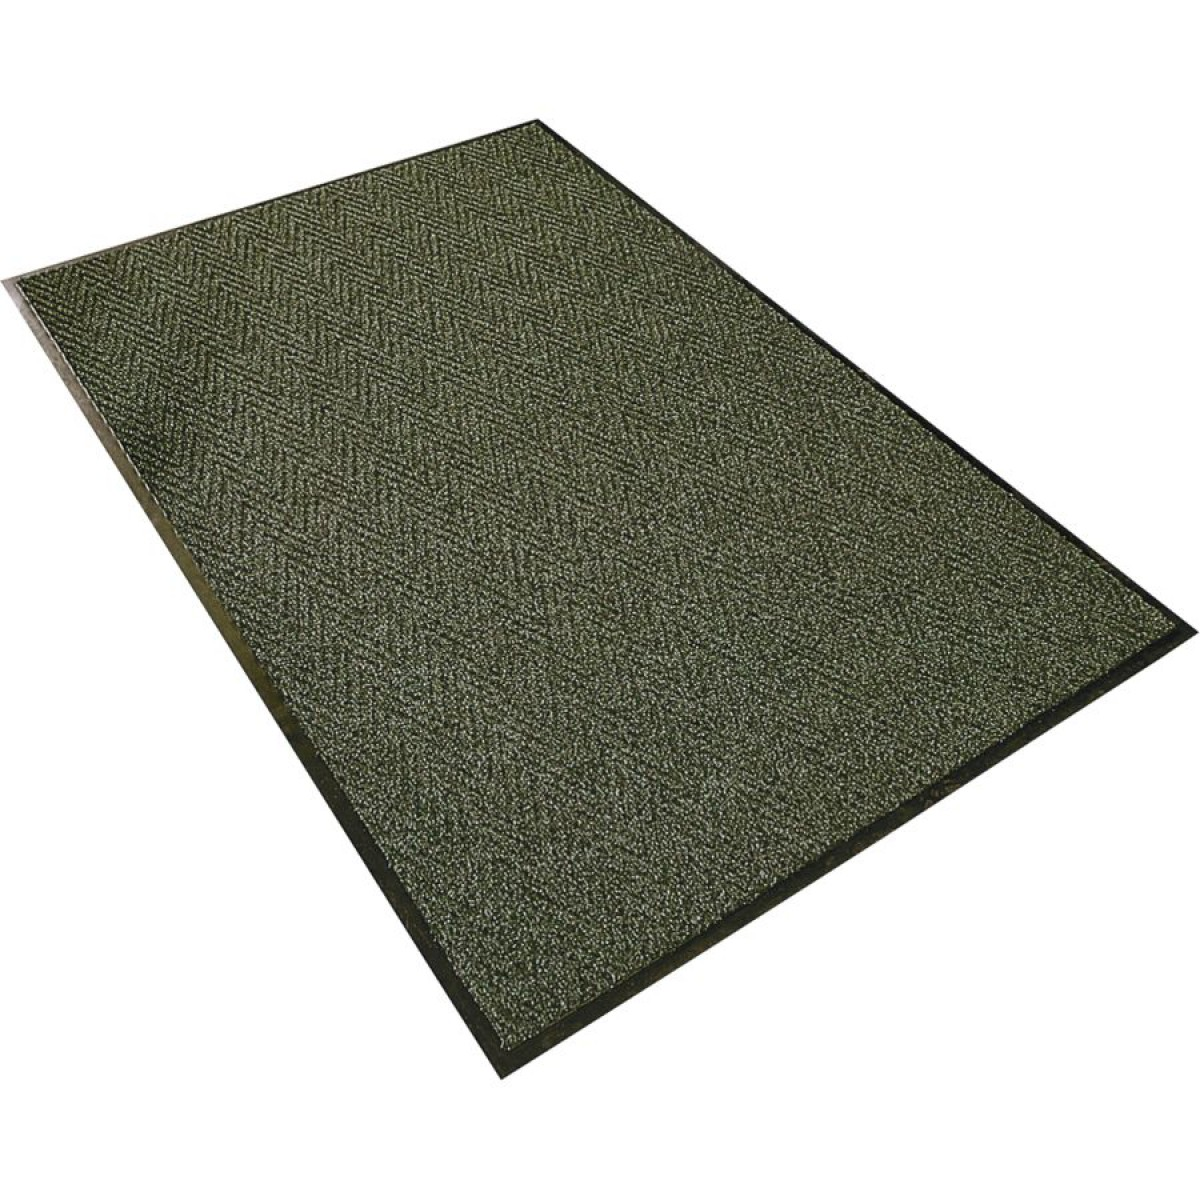 Tapis Entrée Absorbant Tapis D 39entrée Absorbant Antistatique 90cm X 1 5m Hse Center